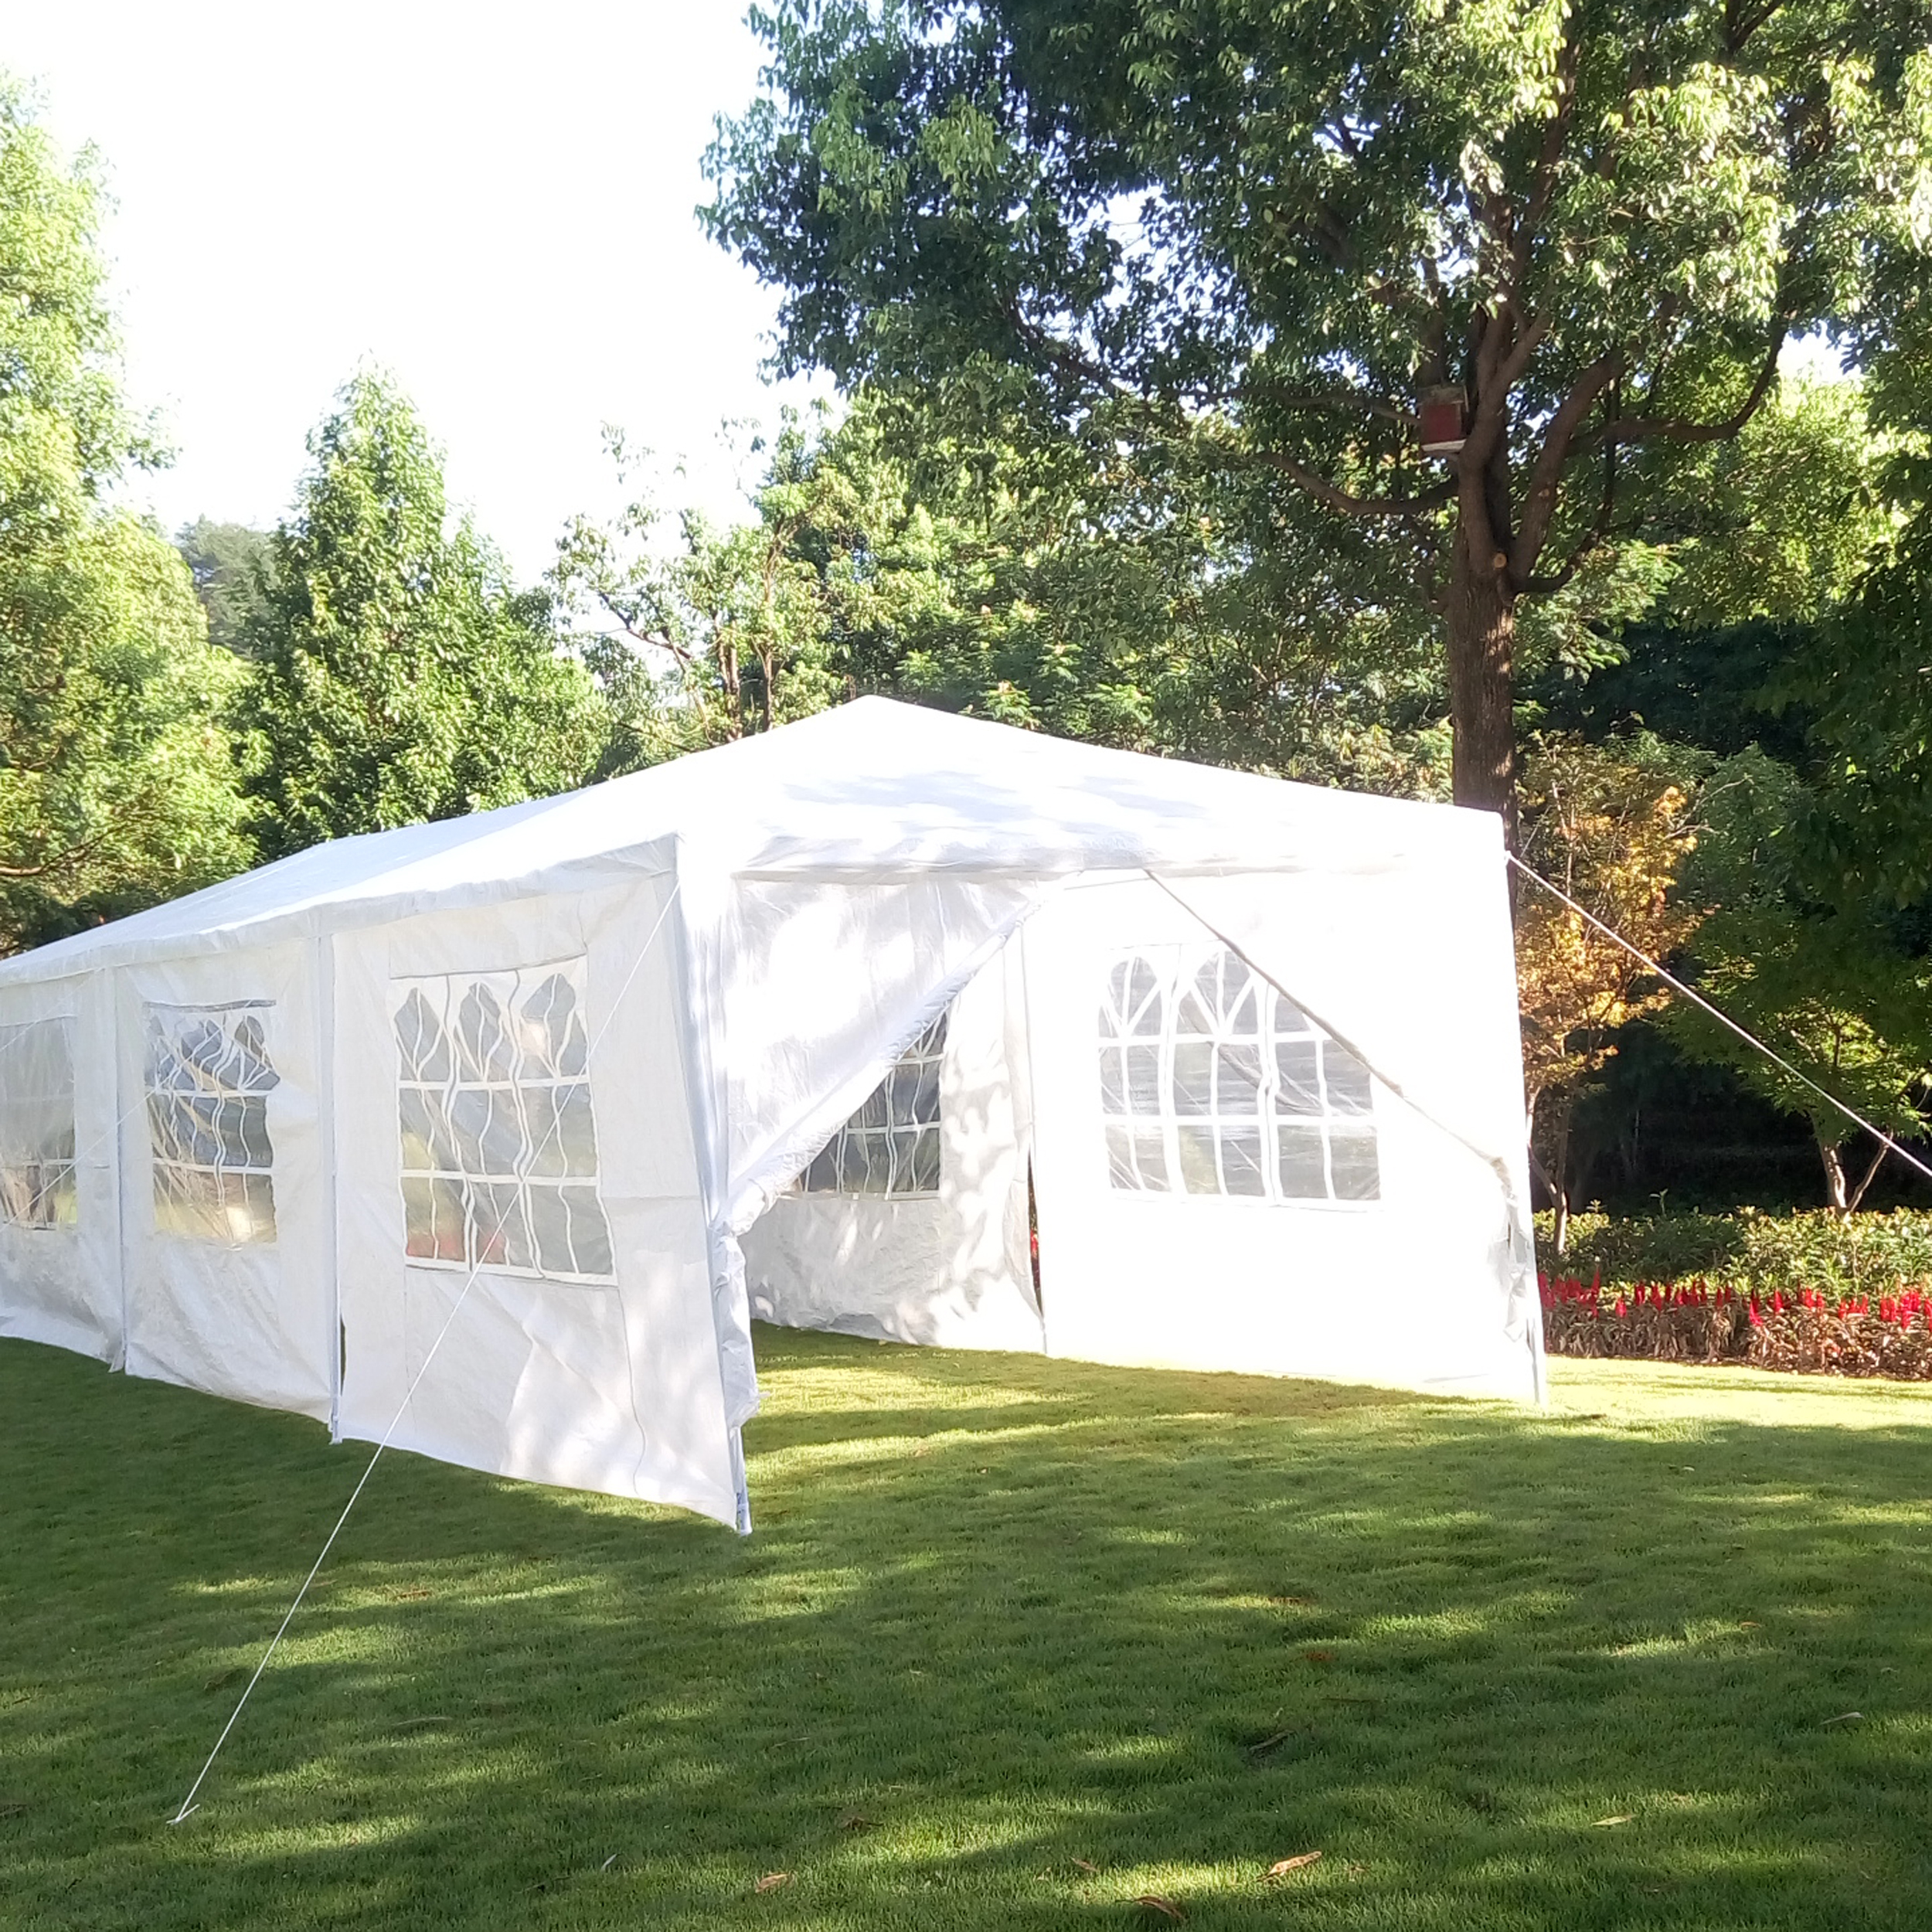 Wedding Tents For Sale: 10'x30'White Outdoor Gazebo Canopy Wedding Party Tent With